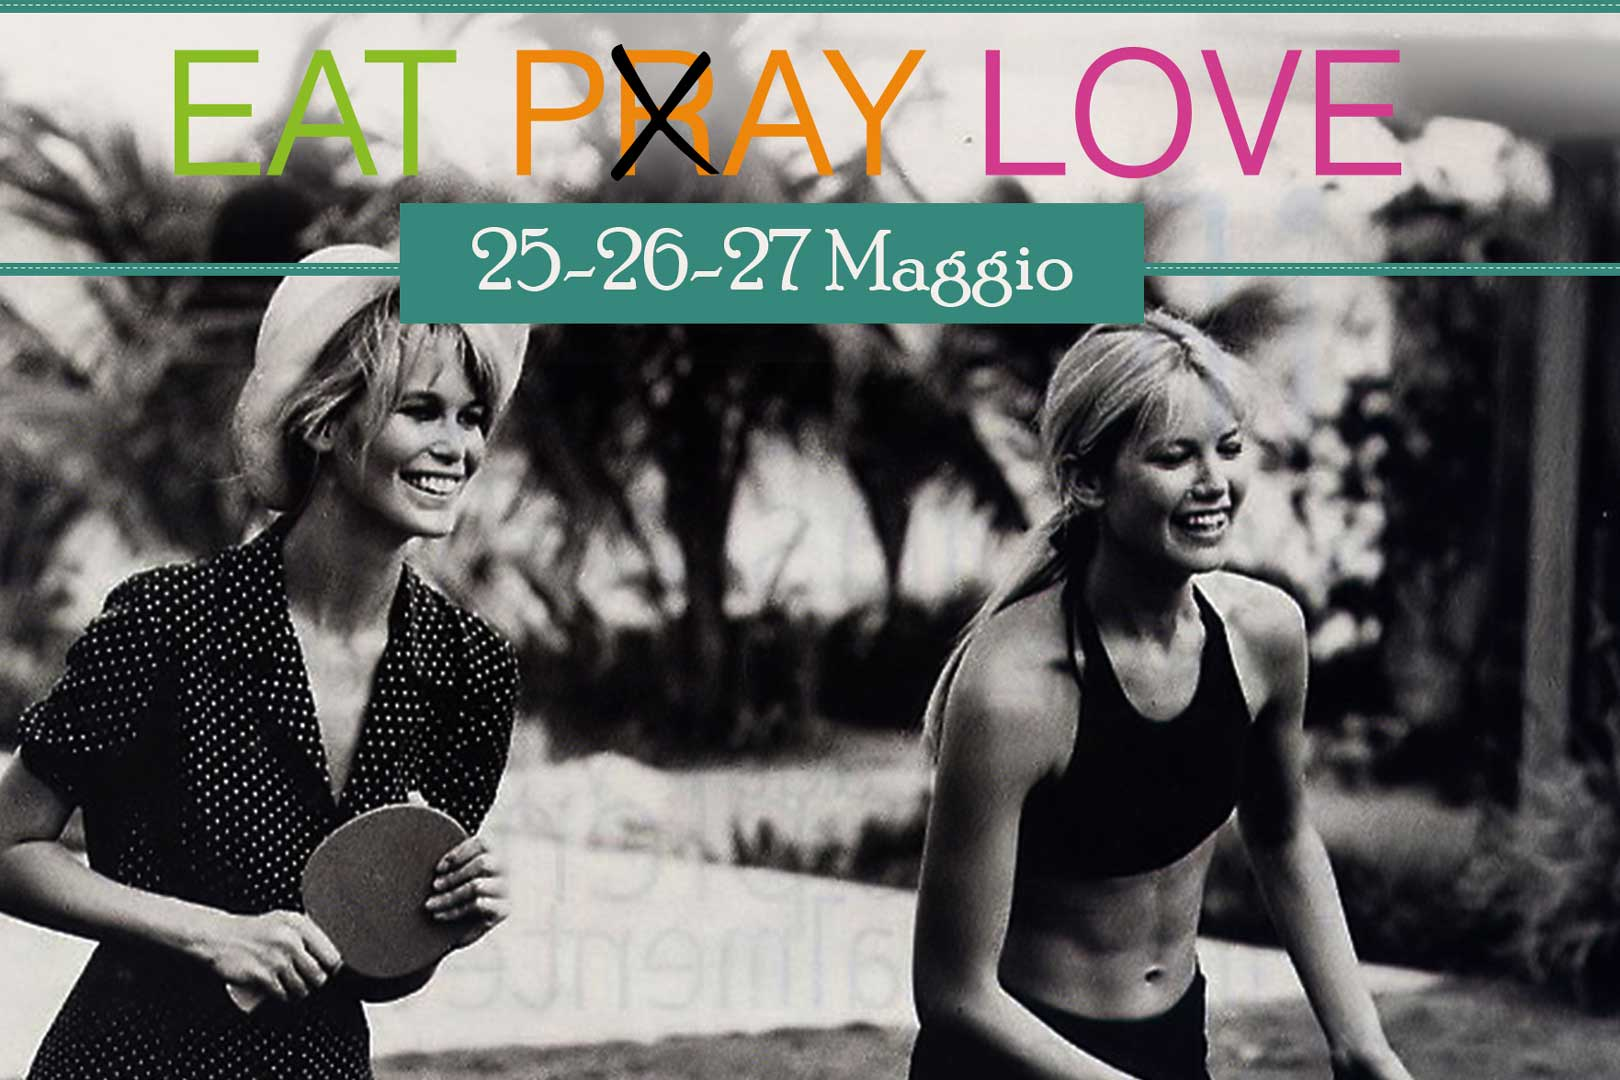 Eat Pay Love 2017